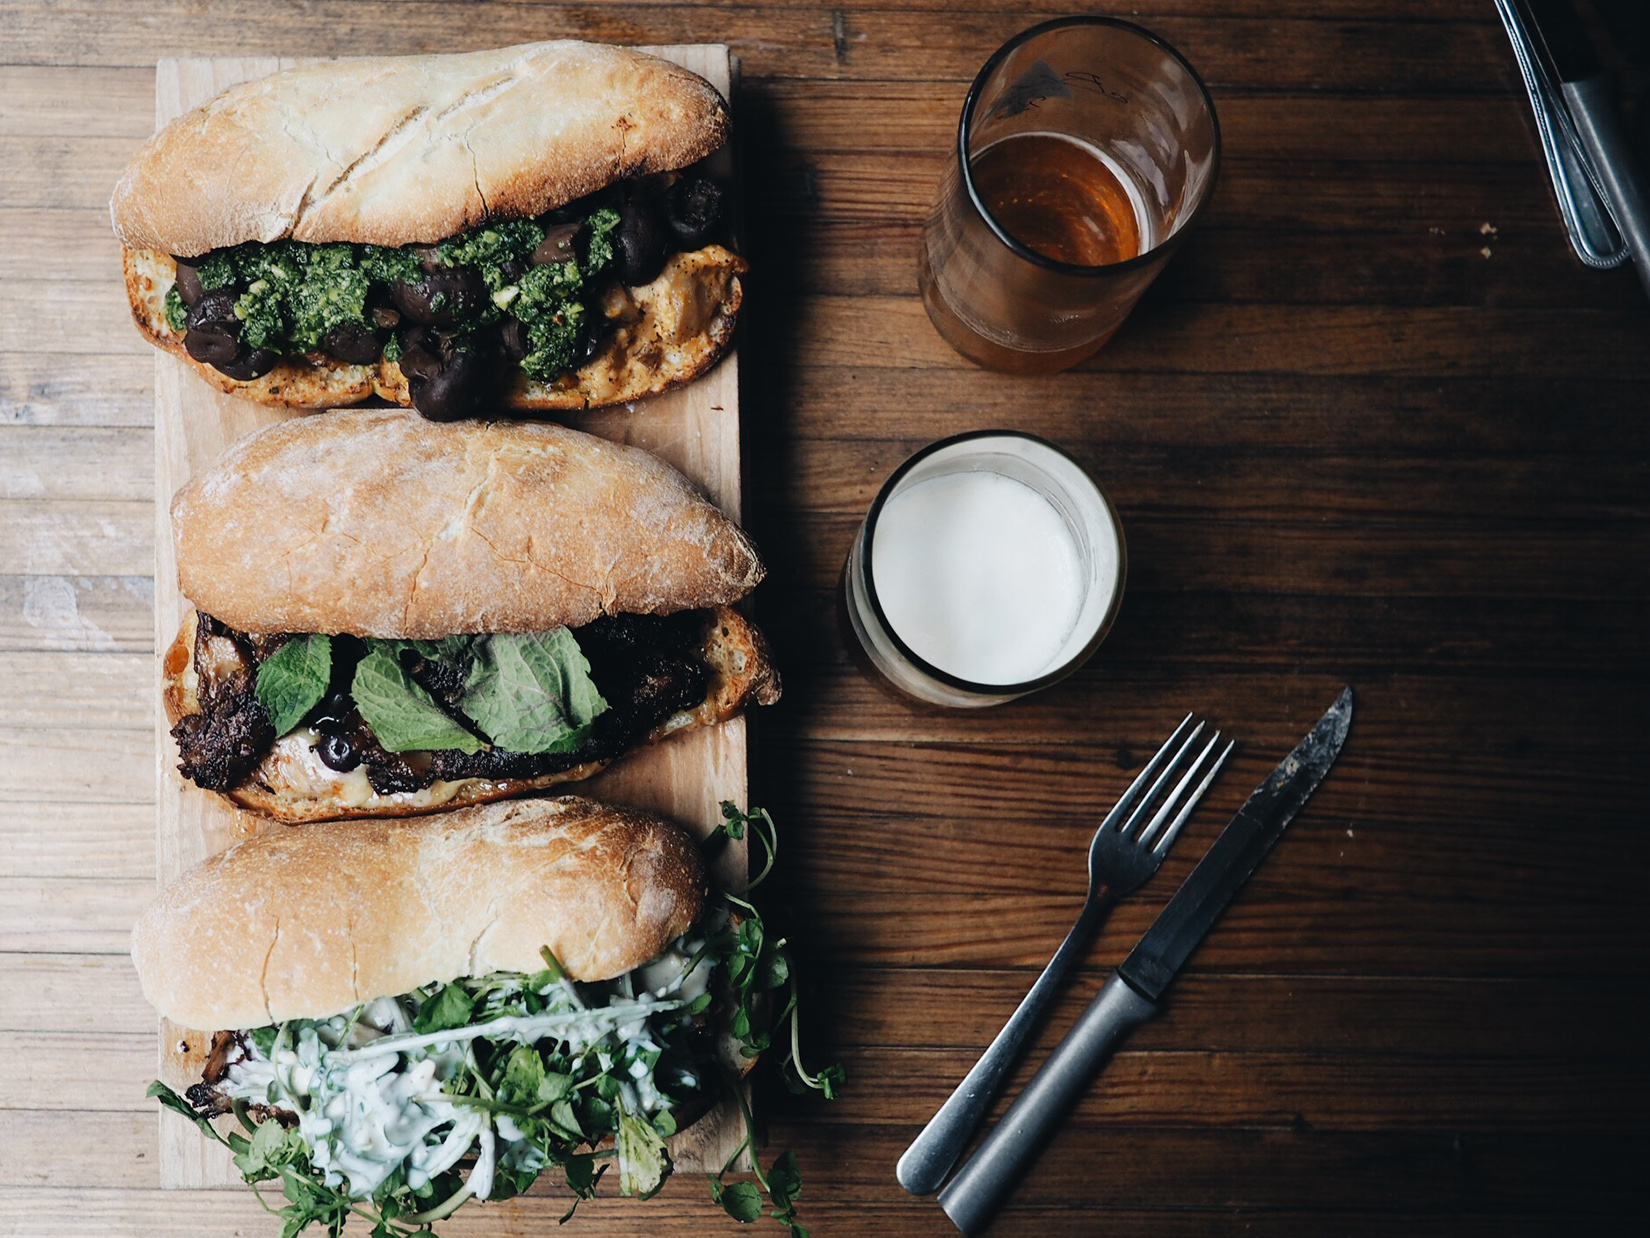 {Sandwiches & beers. Top to bottom: Summer Mushroom, Heirloom Pig, Short Rib.}